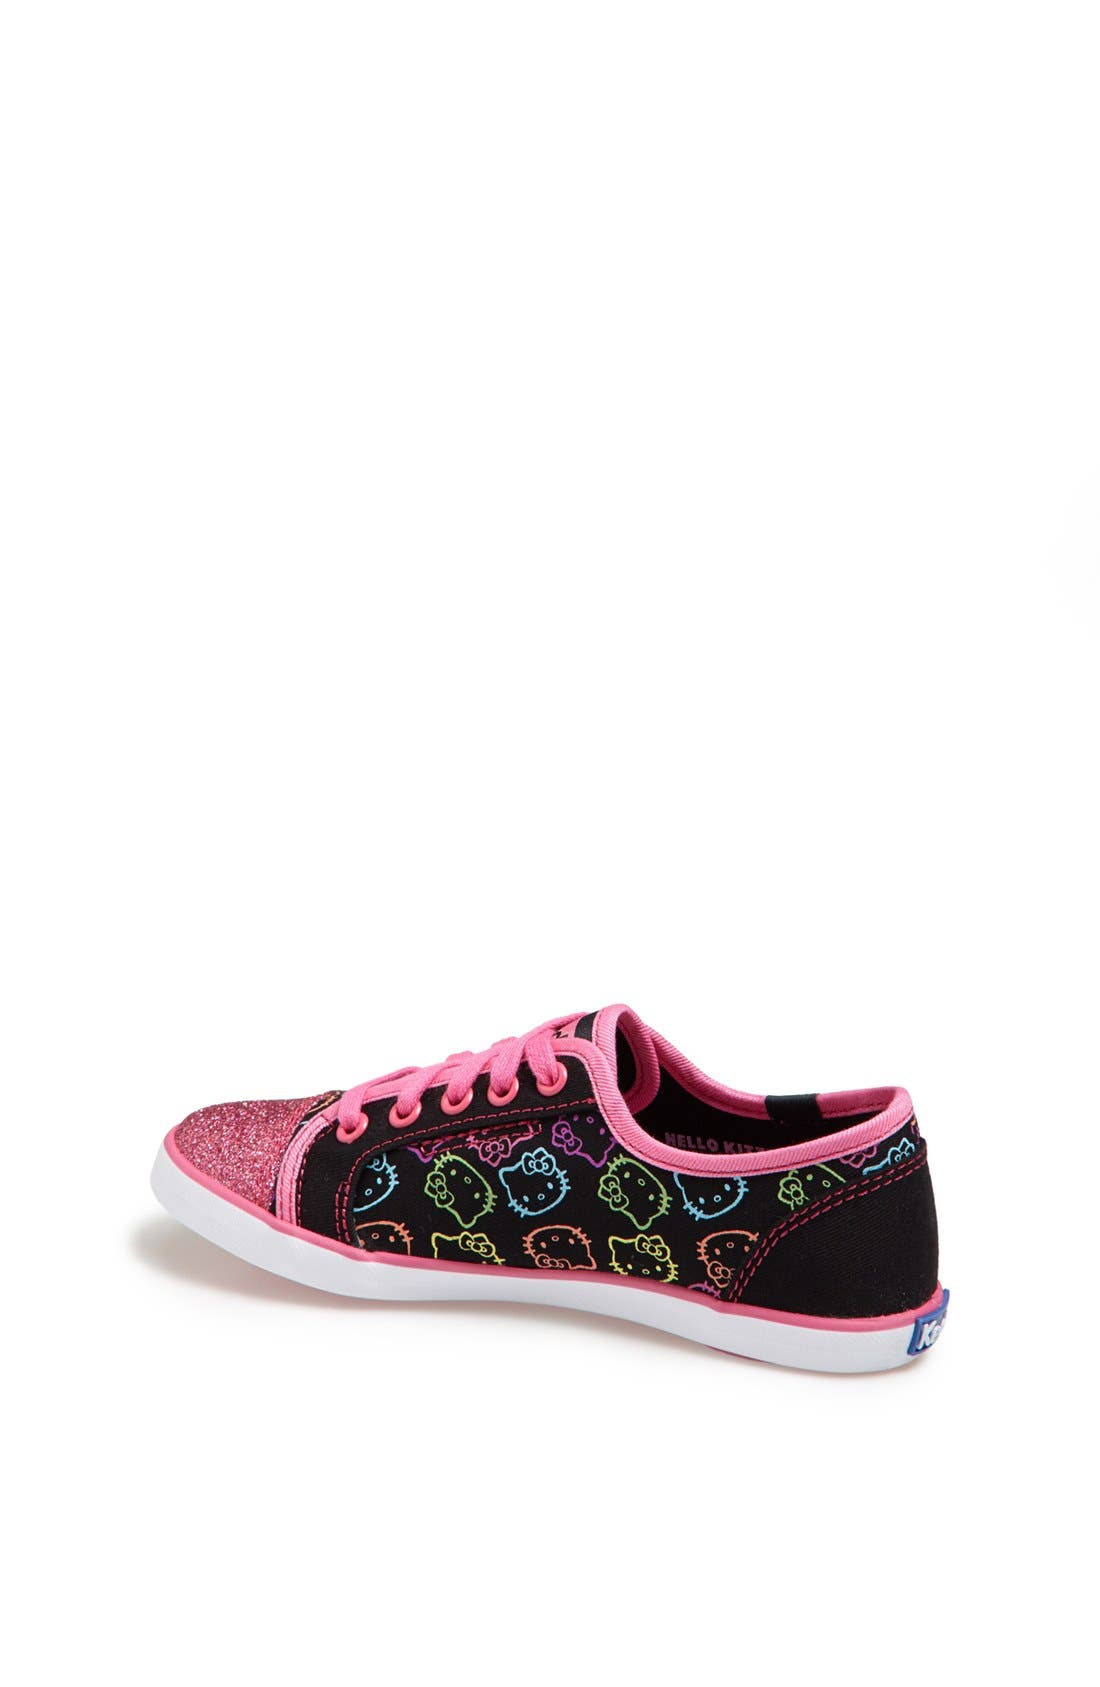 Alternate Image 2  - Keds 'Hello Kitty® - Rally' Sneaker (Toddler, Little Kid & Big Kid)